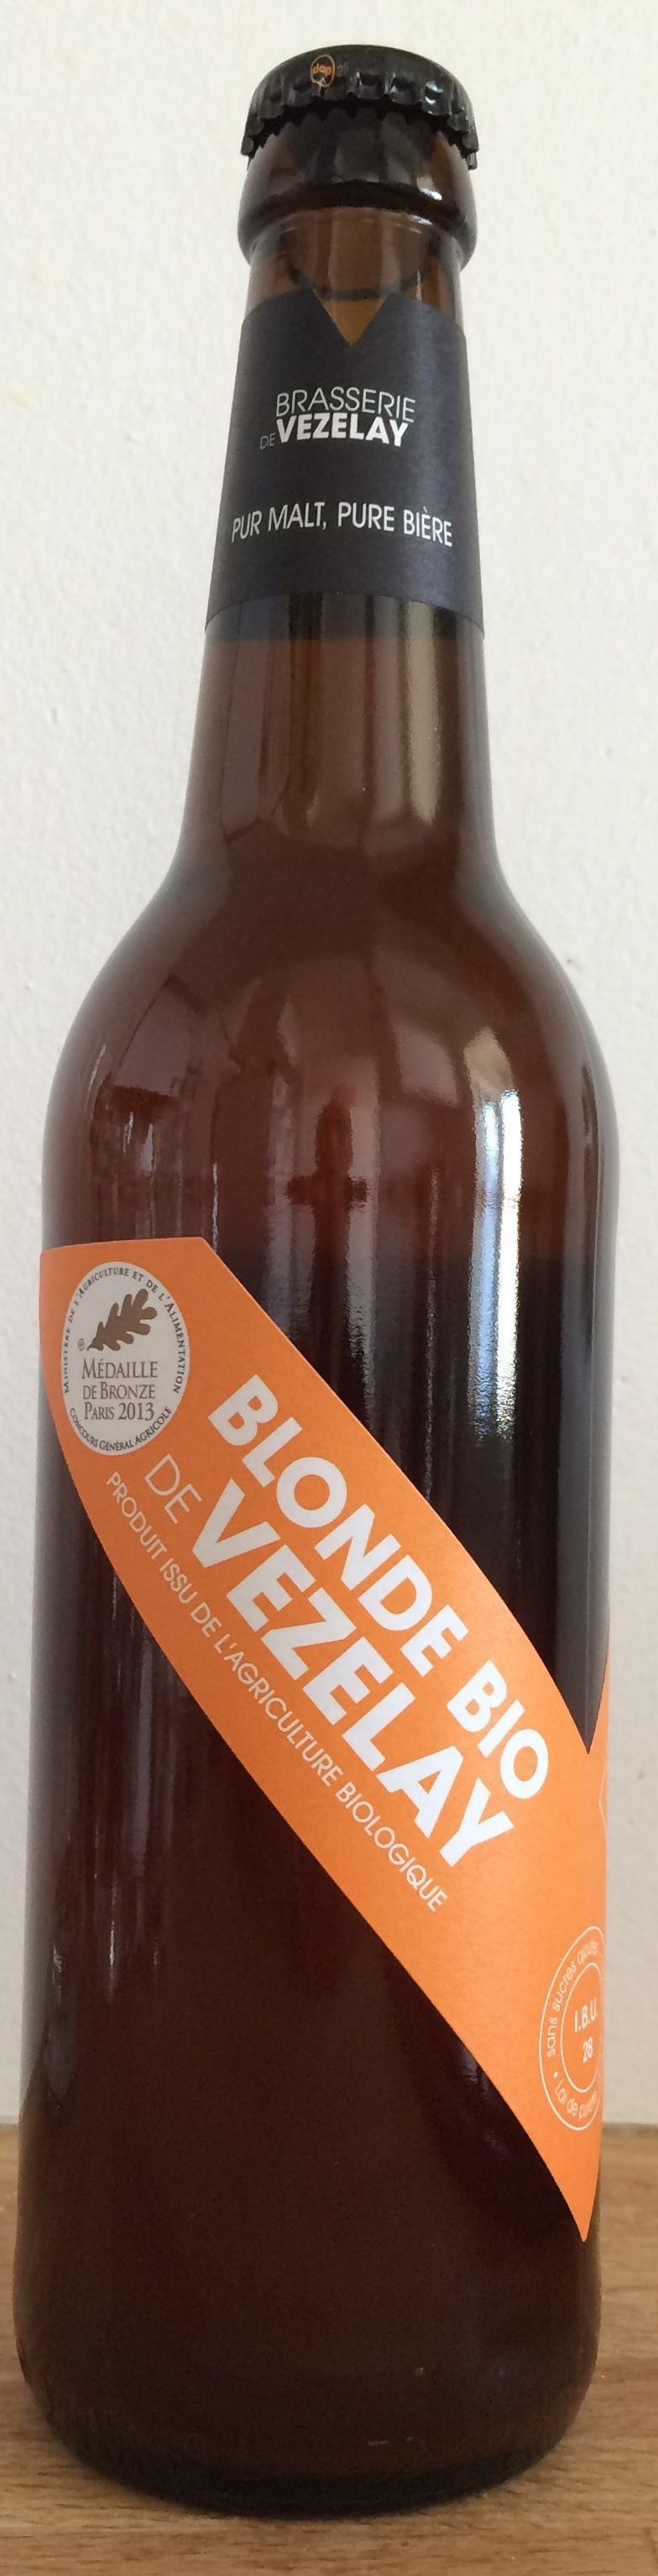 Blonde bio de Vezelay - Product - fr